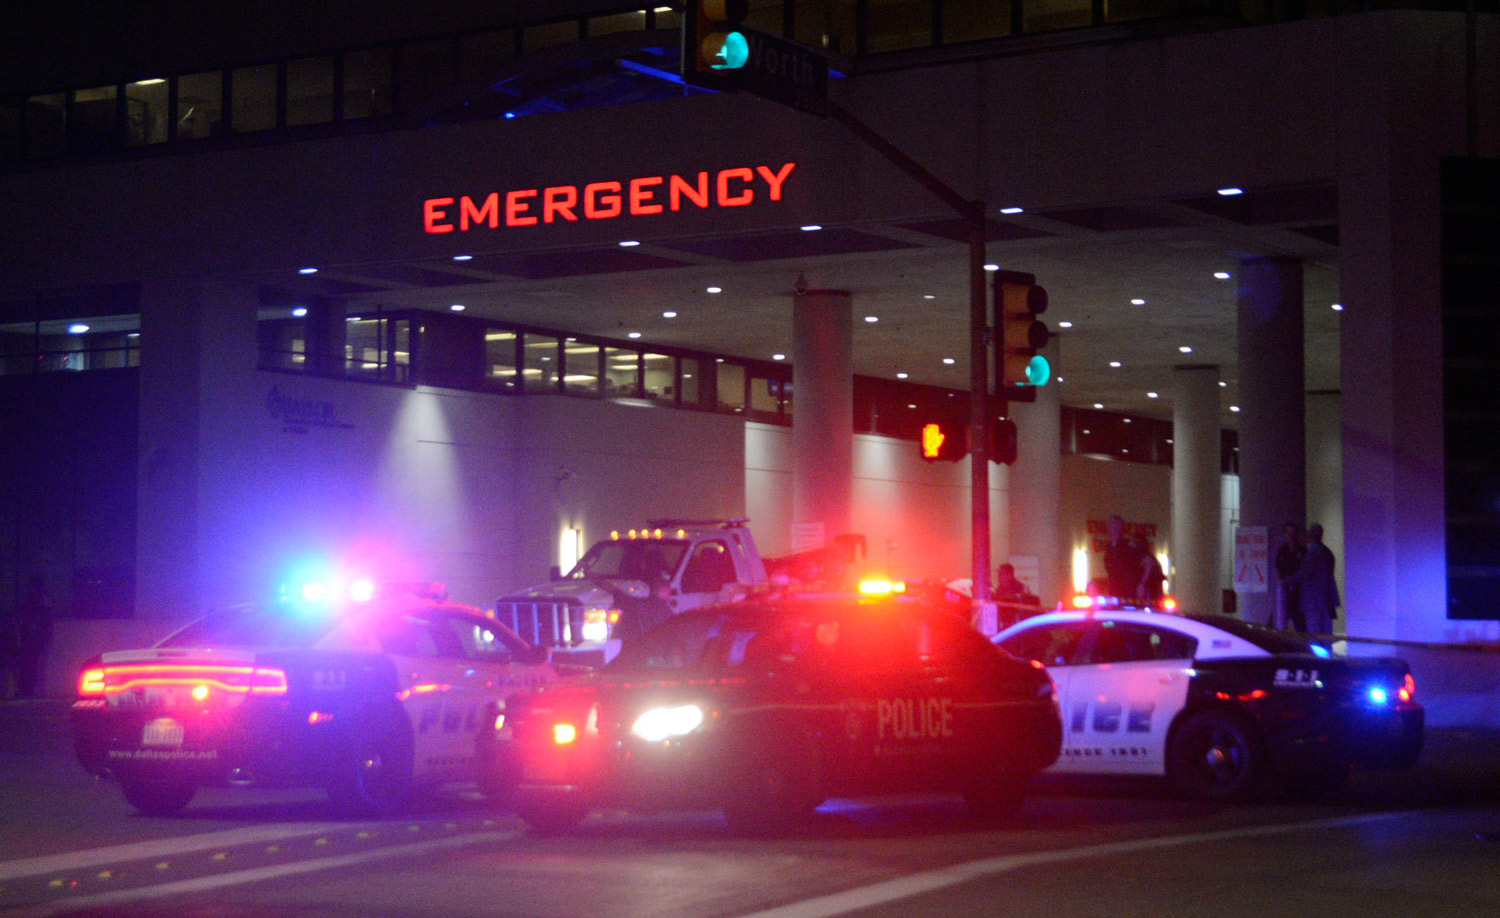 Dallas Police cars in front of the Baylor University Medical Center in the early hours of July 8. (Photo: Mark Kaplan/Newscom)